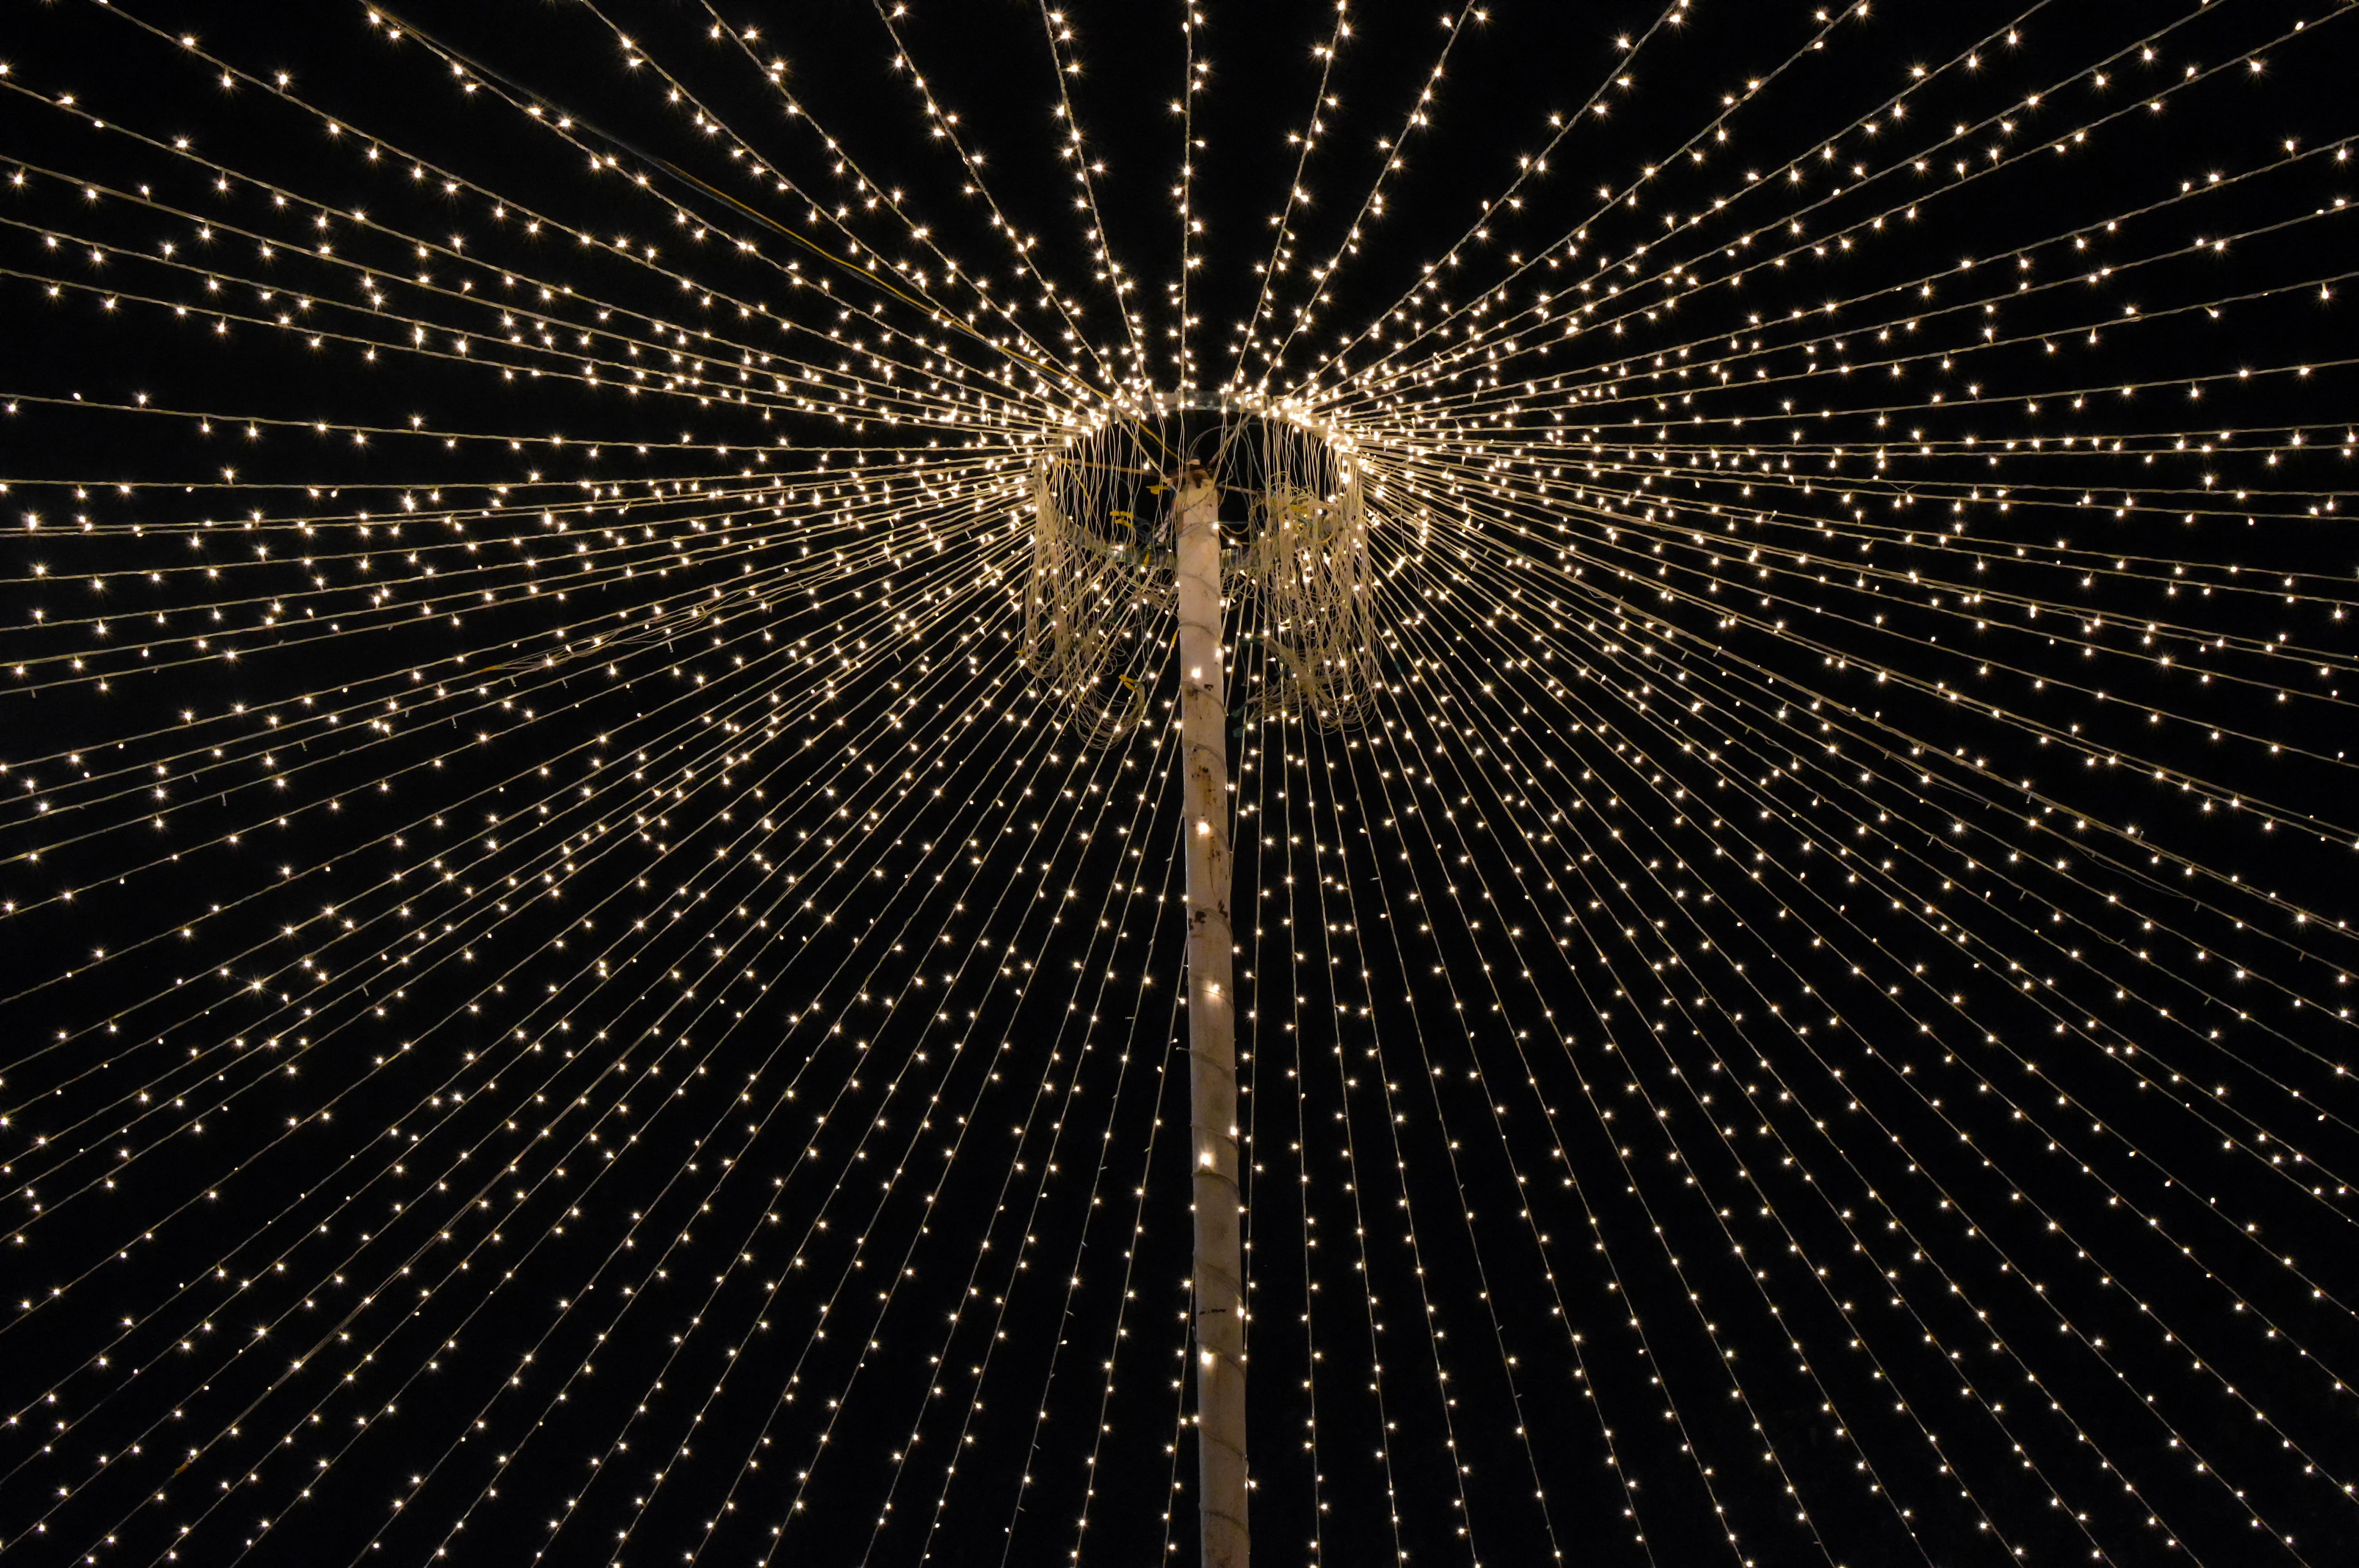 File:Rice Lights Converging To A Center In A Outdoor Party Decoration